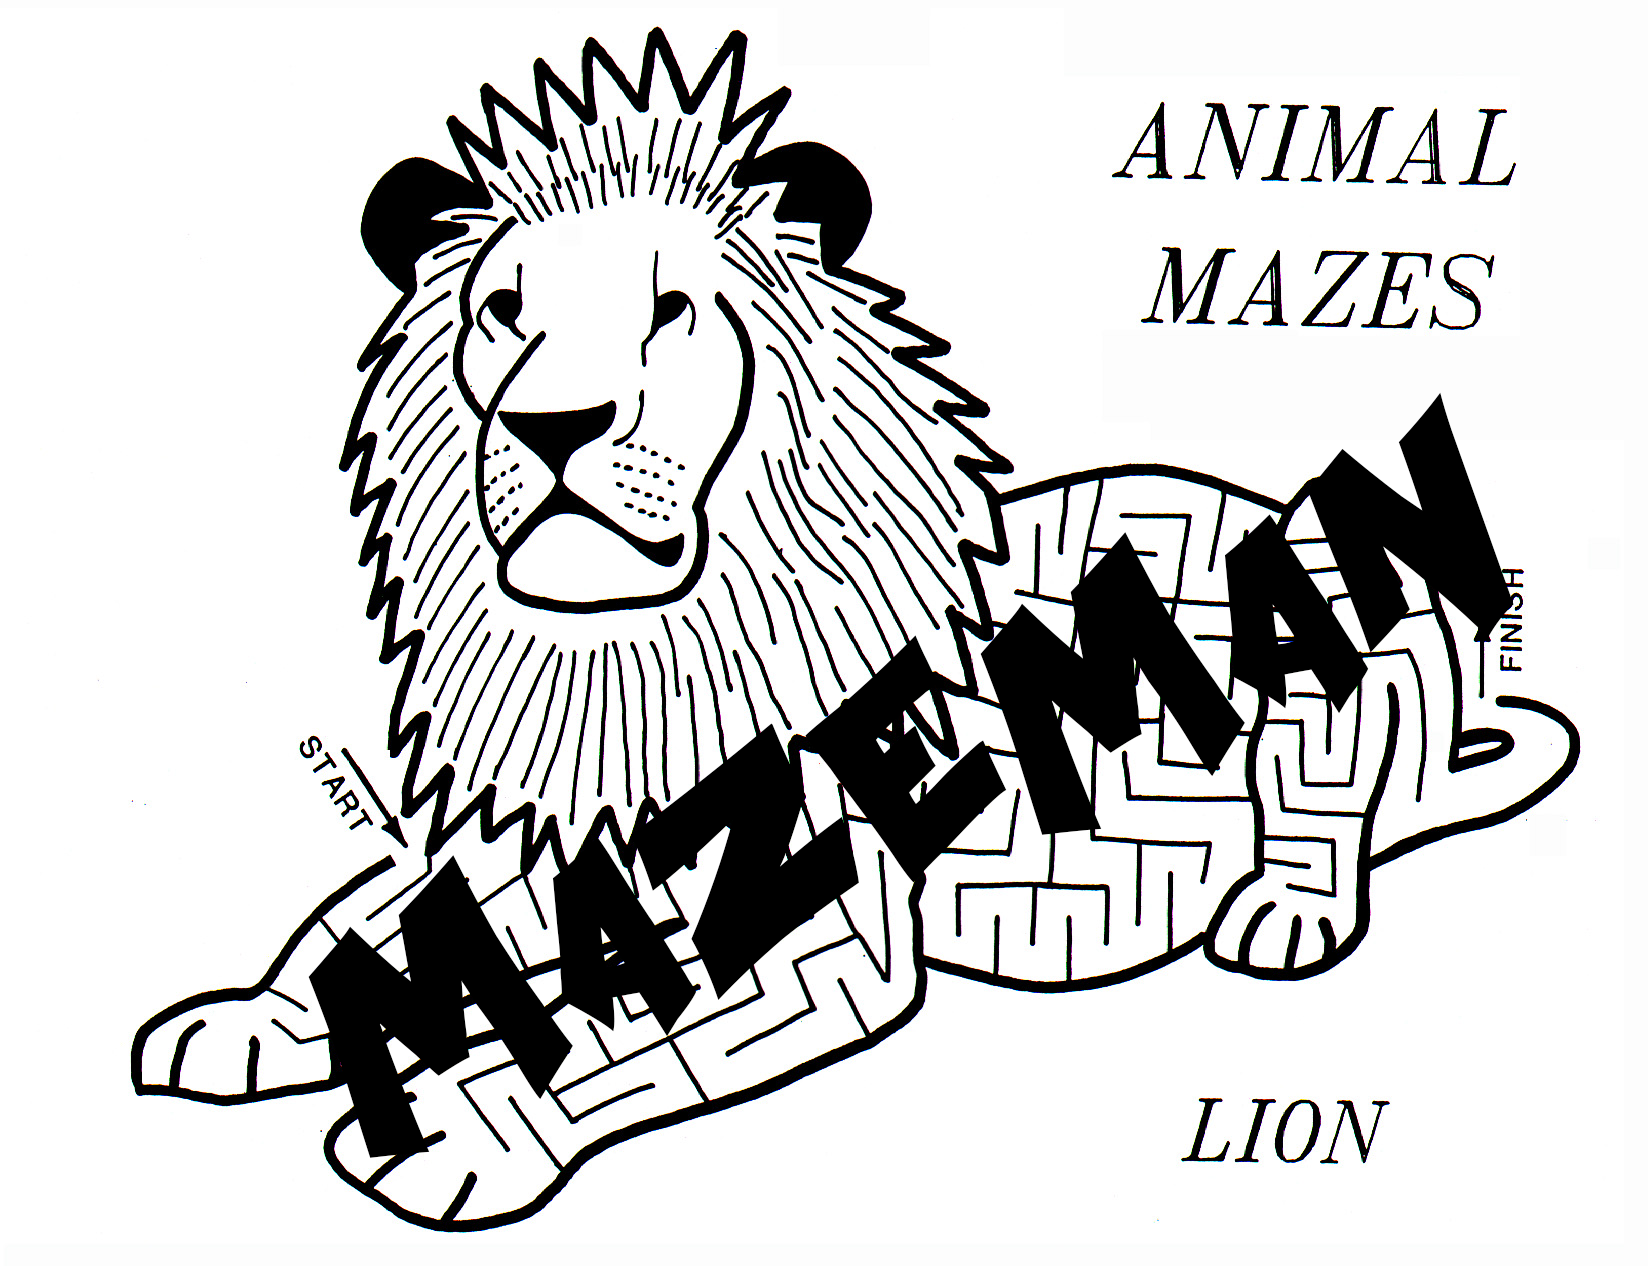 Animal Maze Booklet